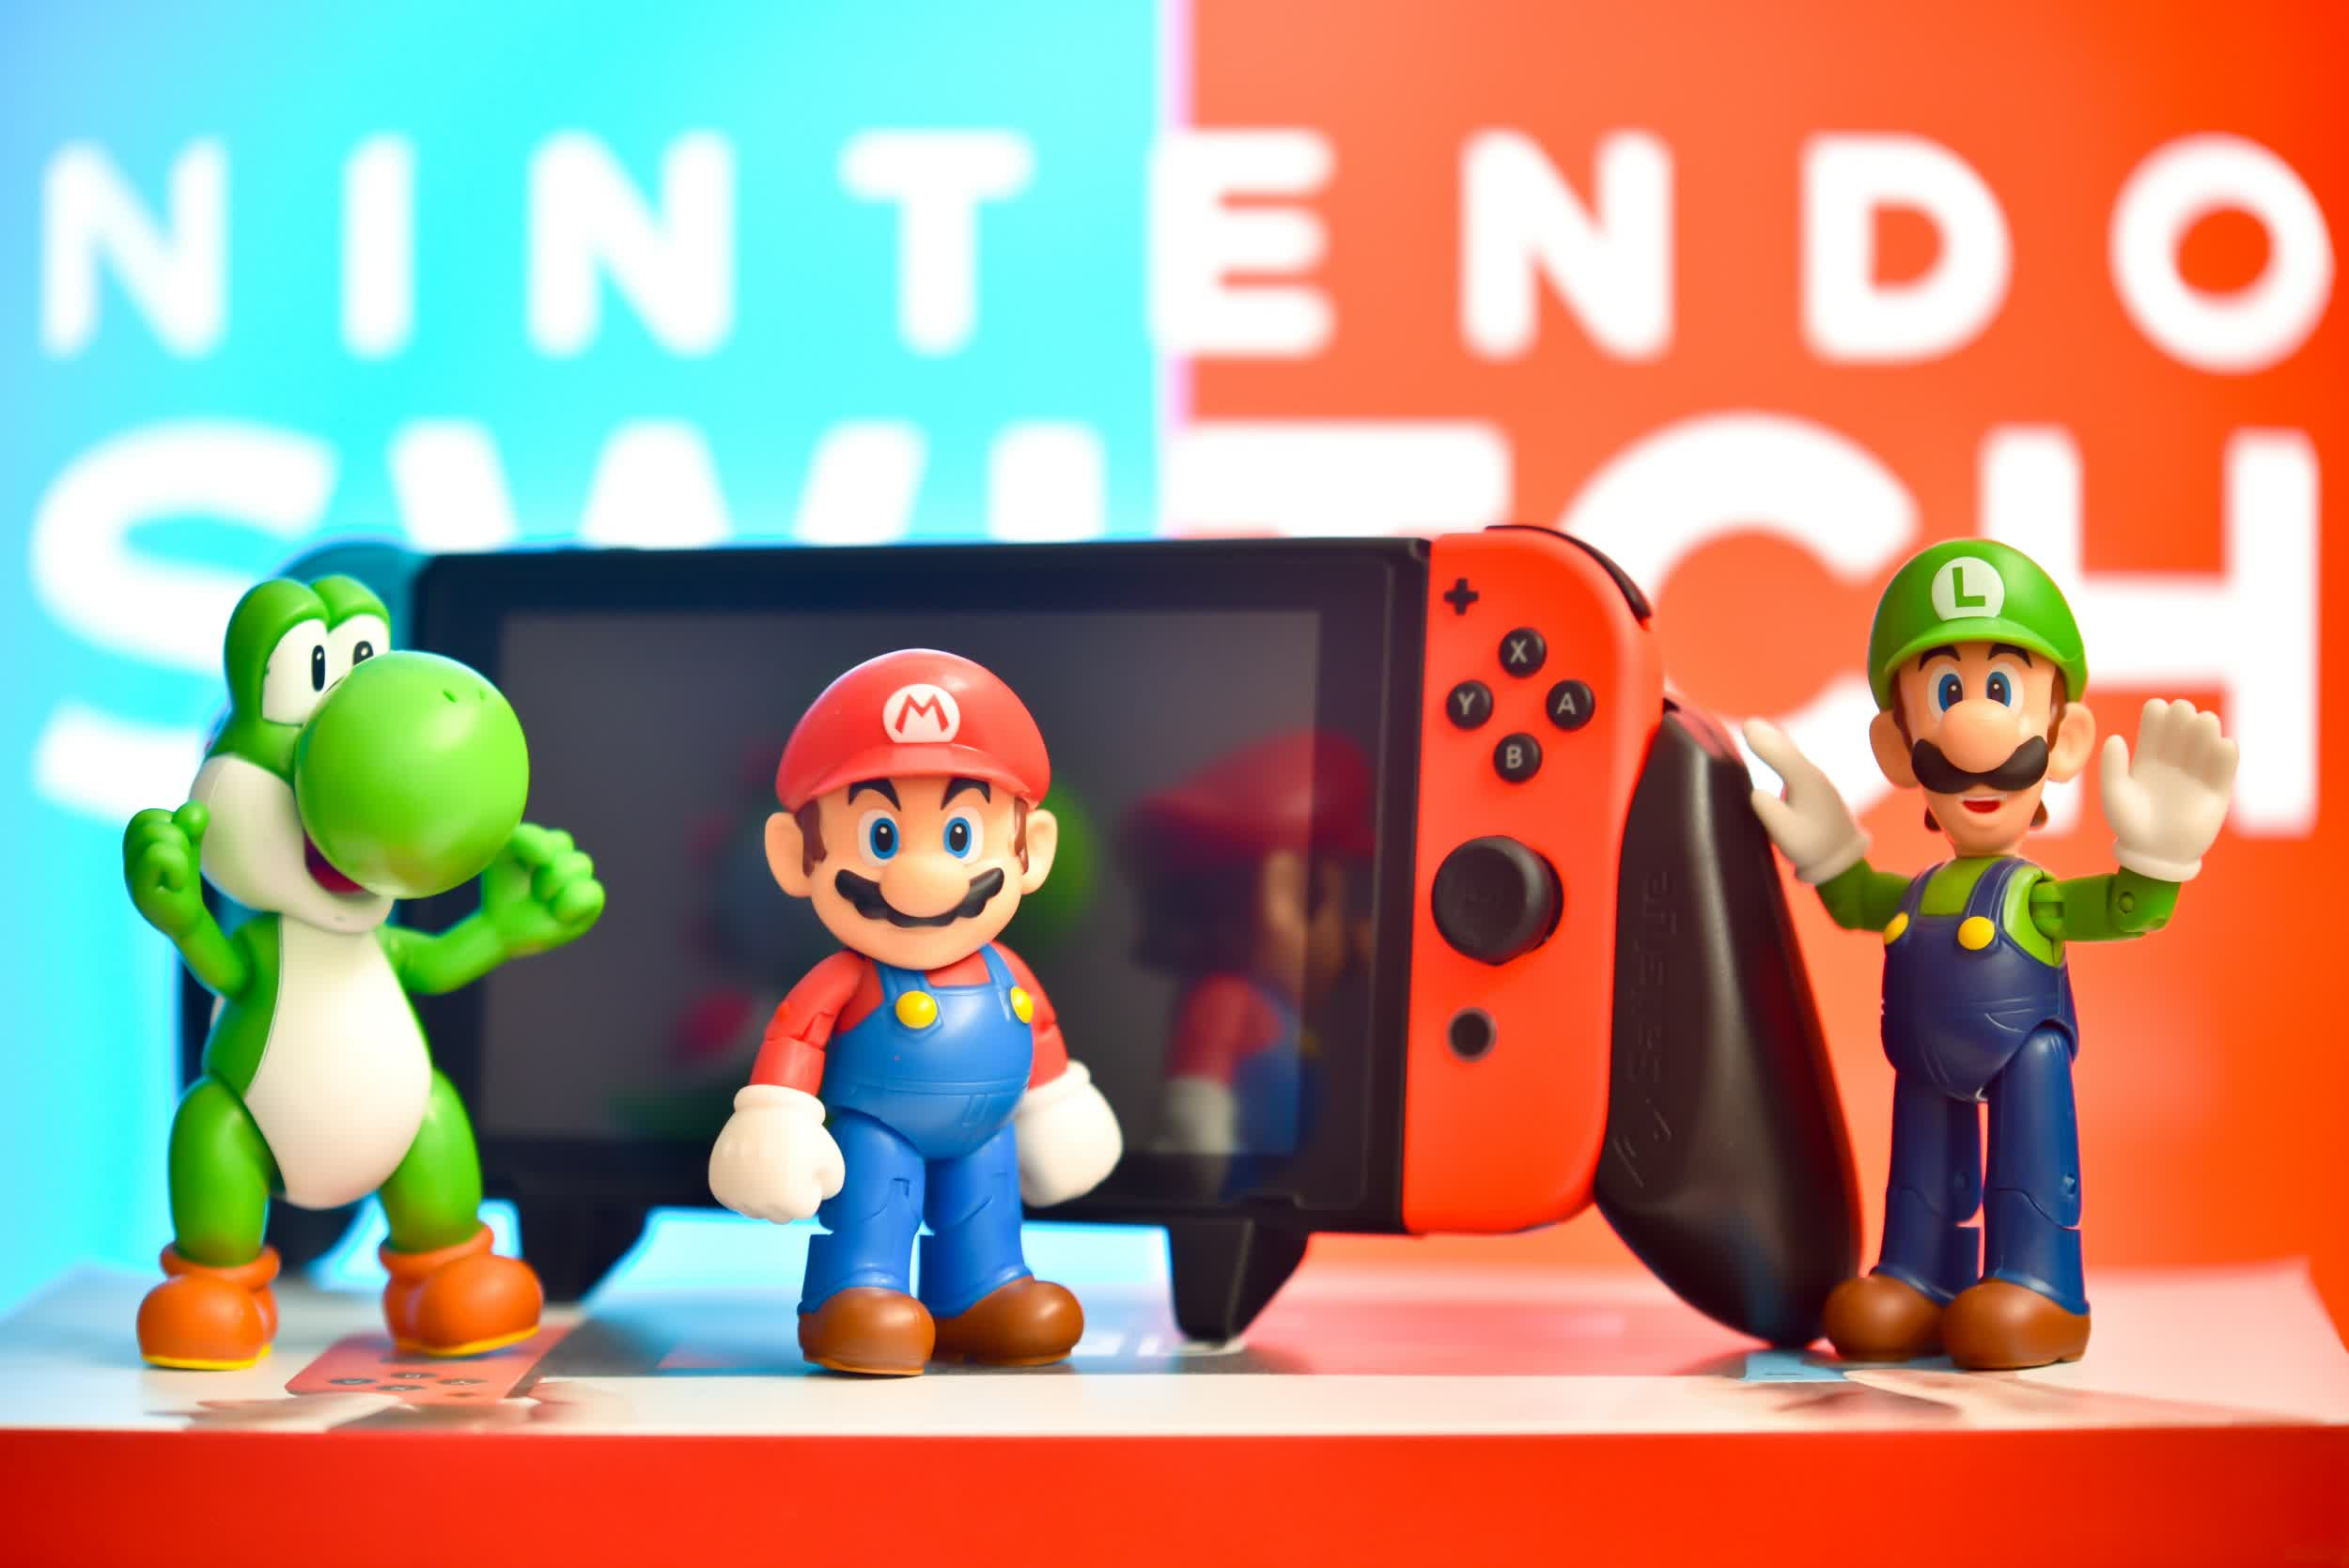 Nintendo's upgraded handheld might be called the Super Switch